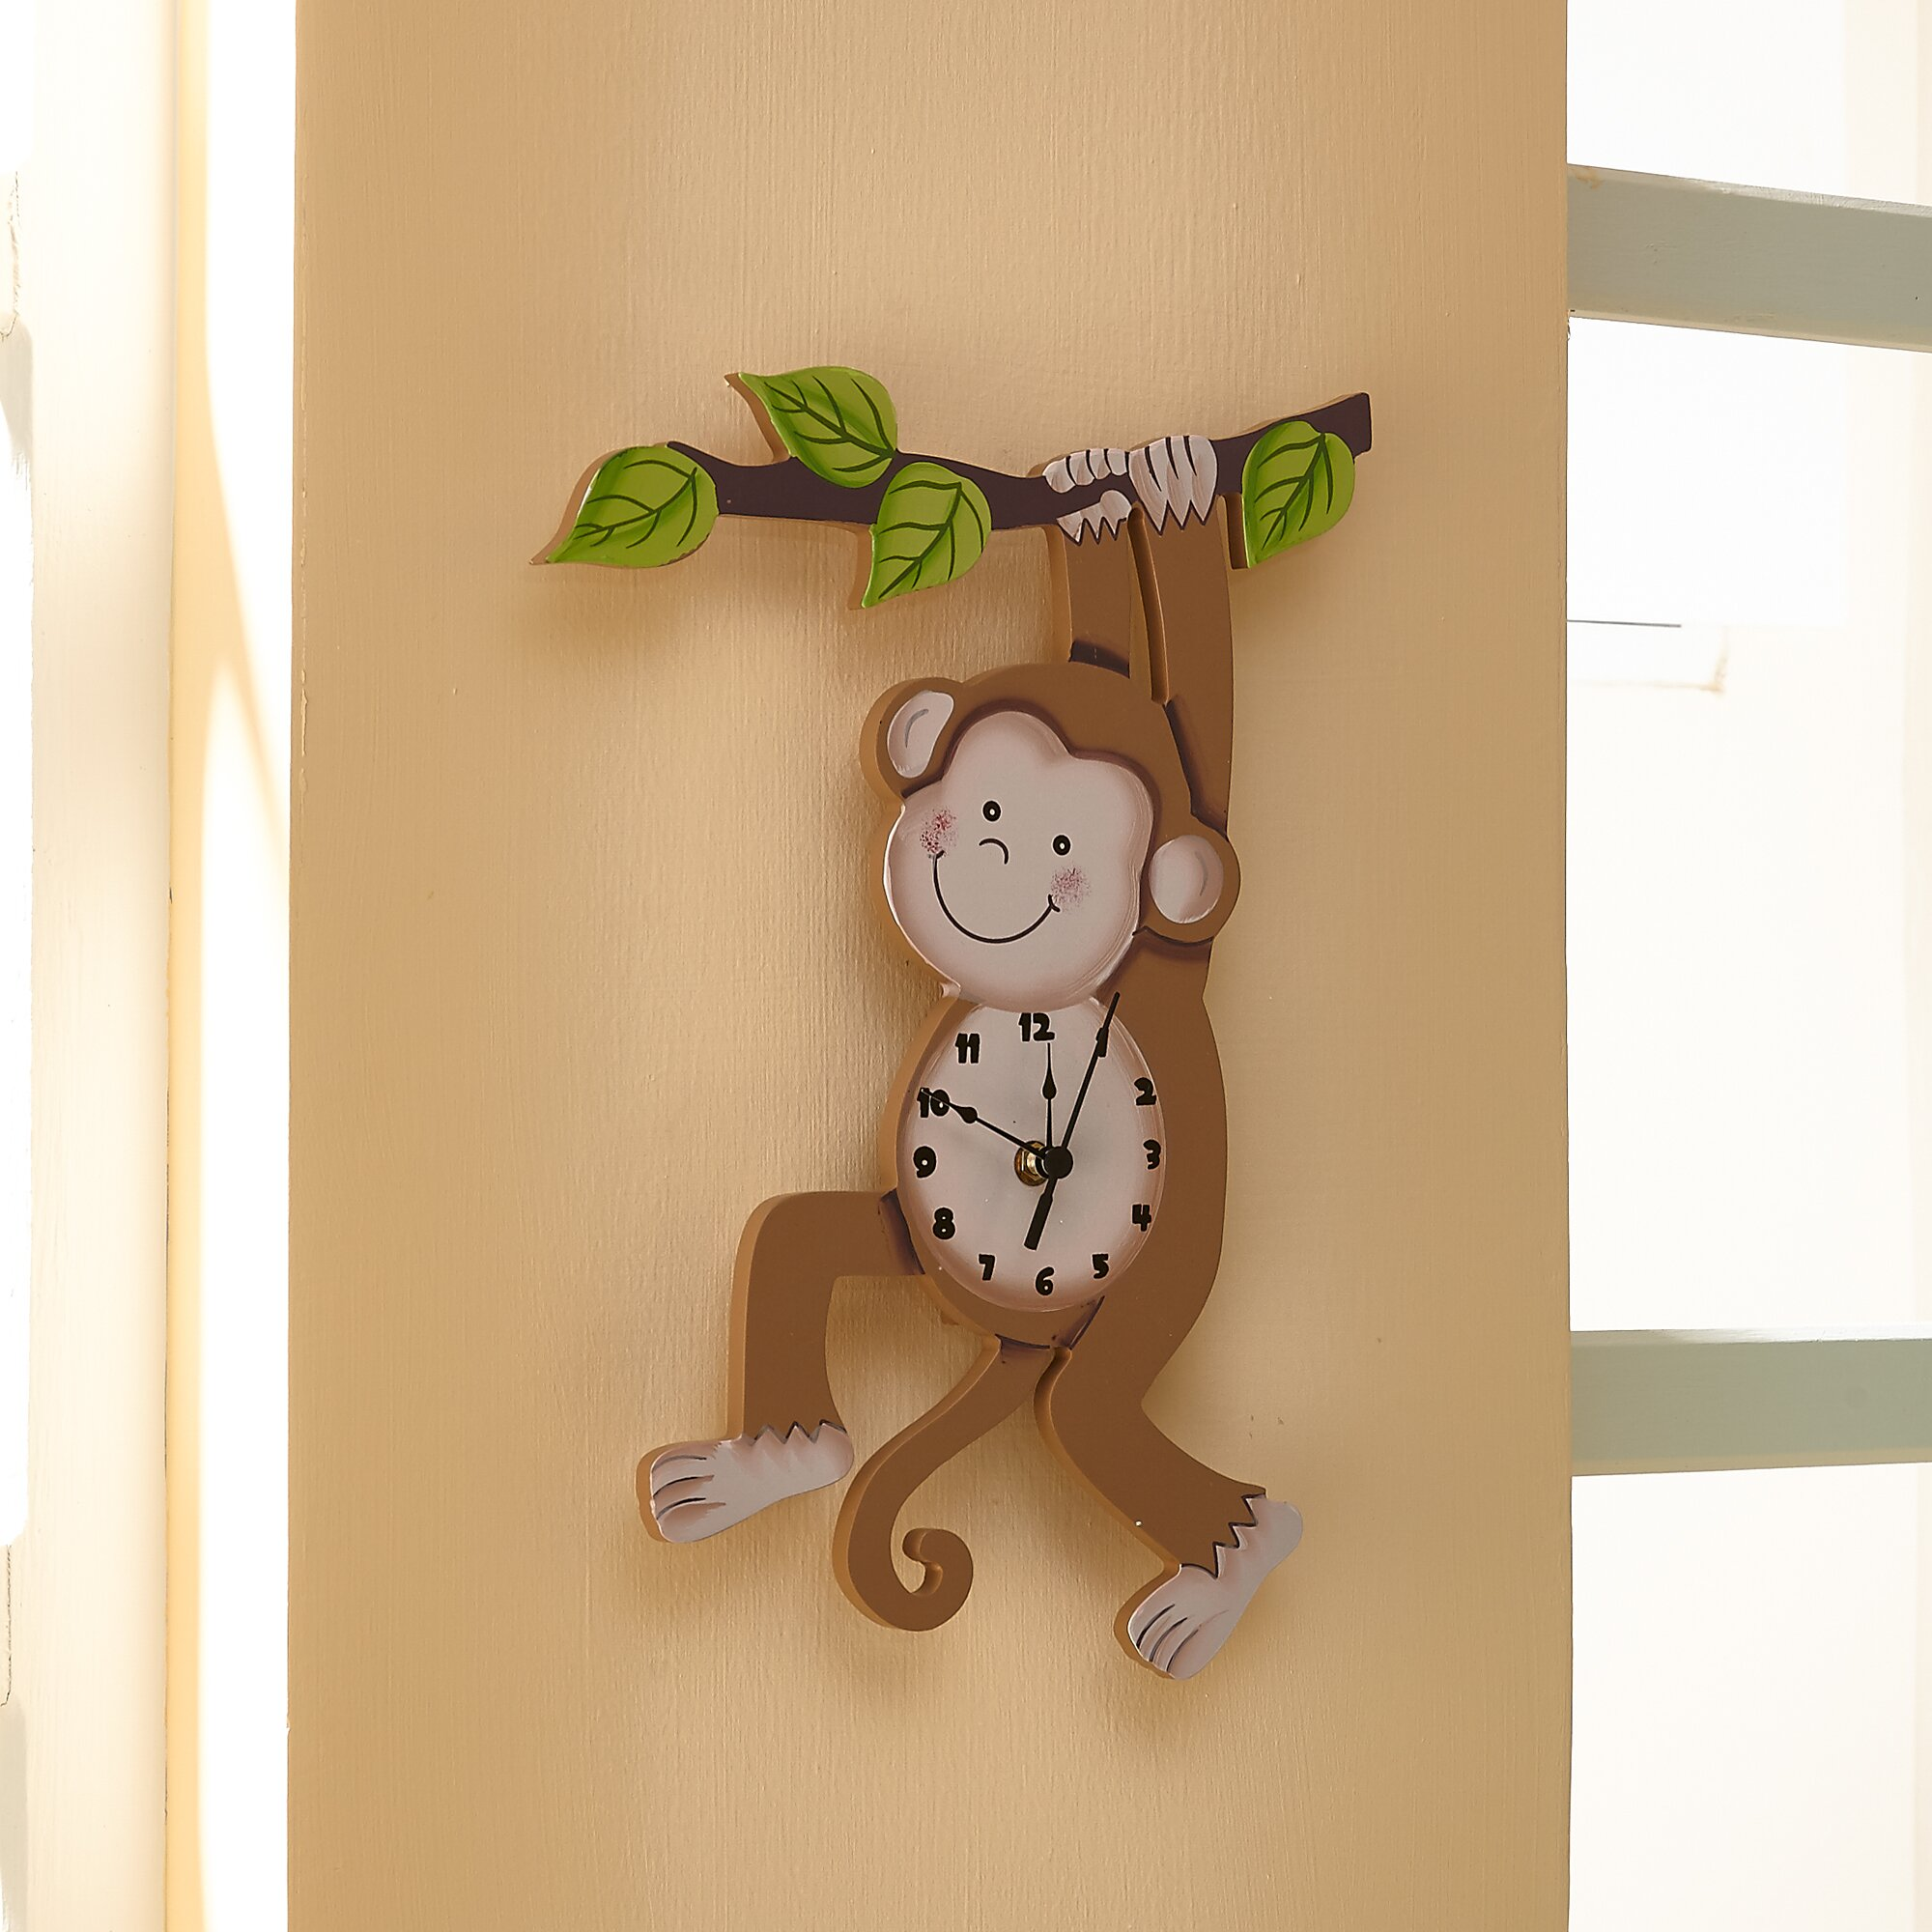 Decorative bathroom wall clocks - Decorative Bathroom Wall Clocks Home Decor